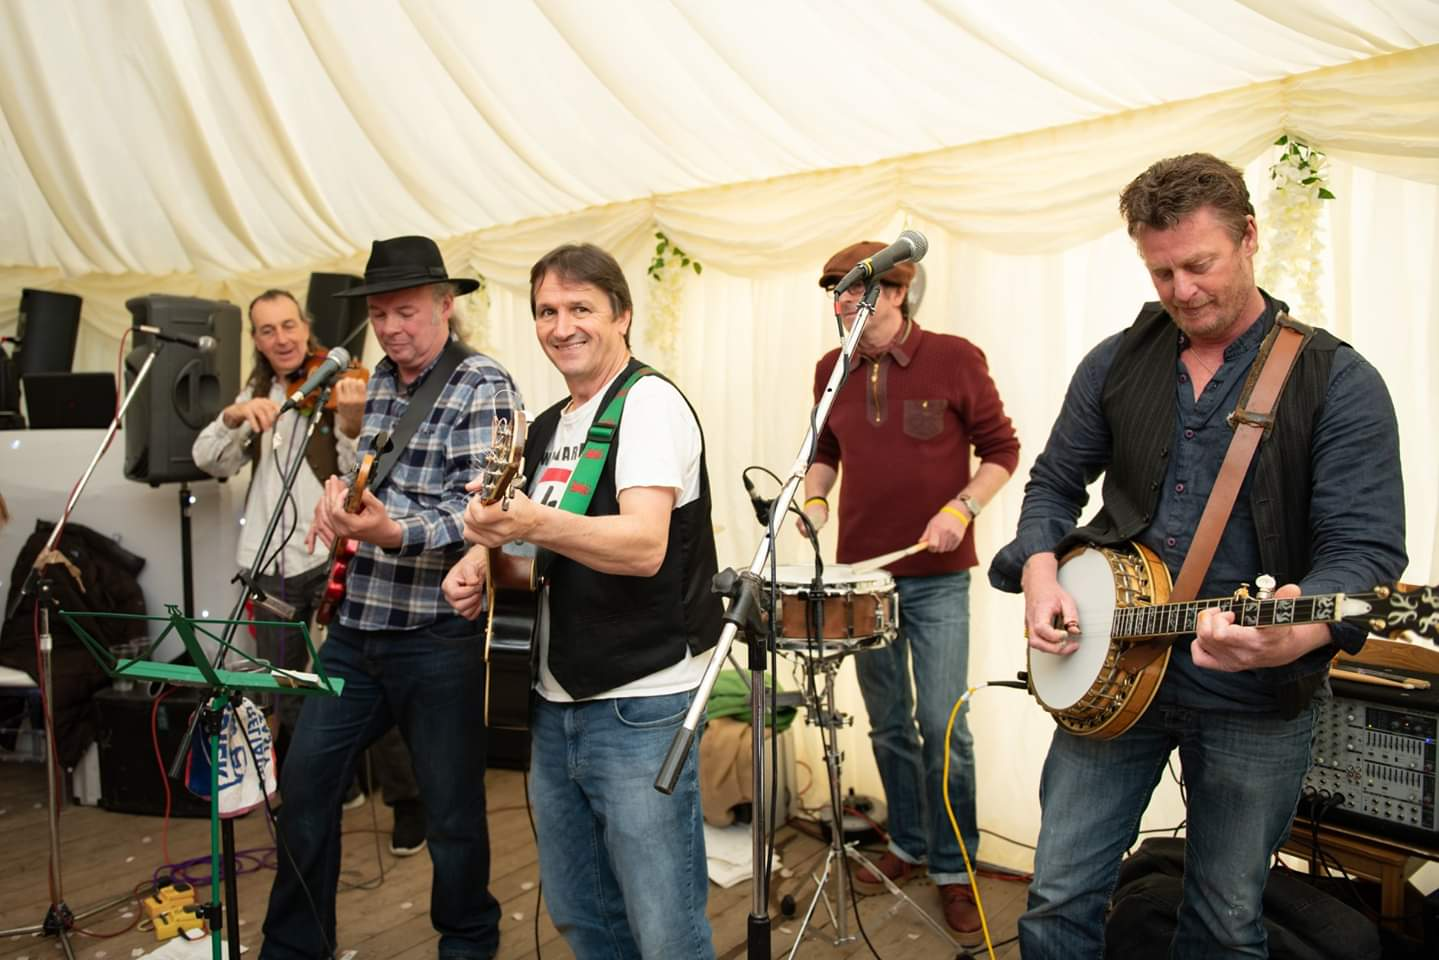 Promo Manic Jacks Bluegrass Vale of Glamorgan